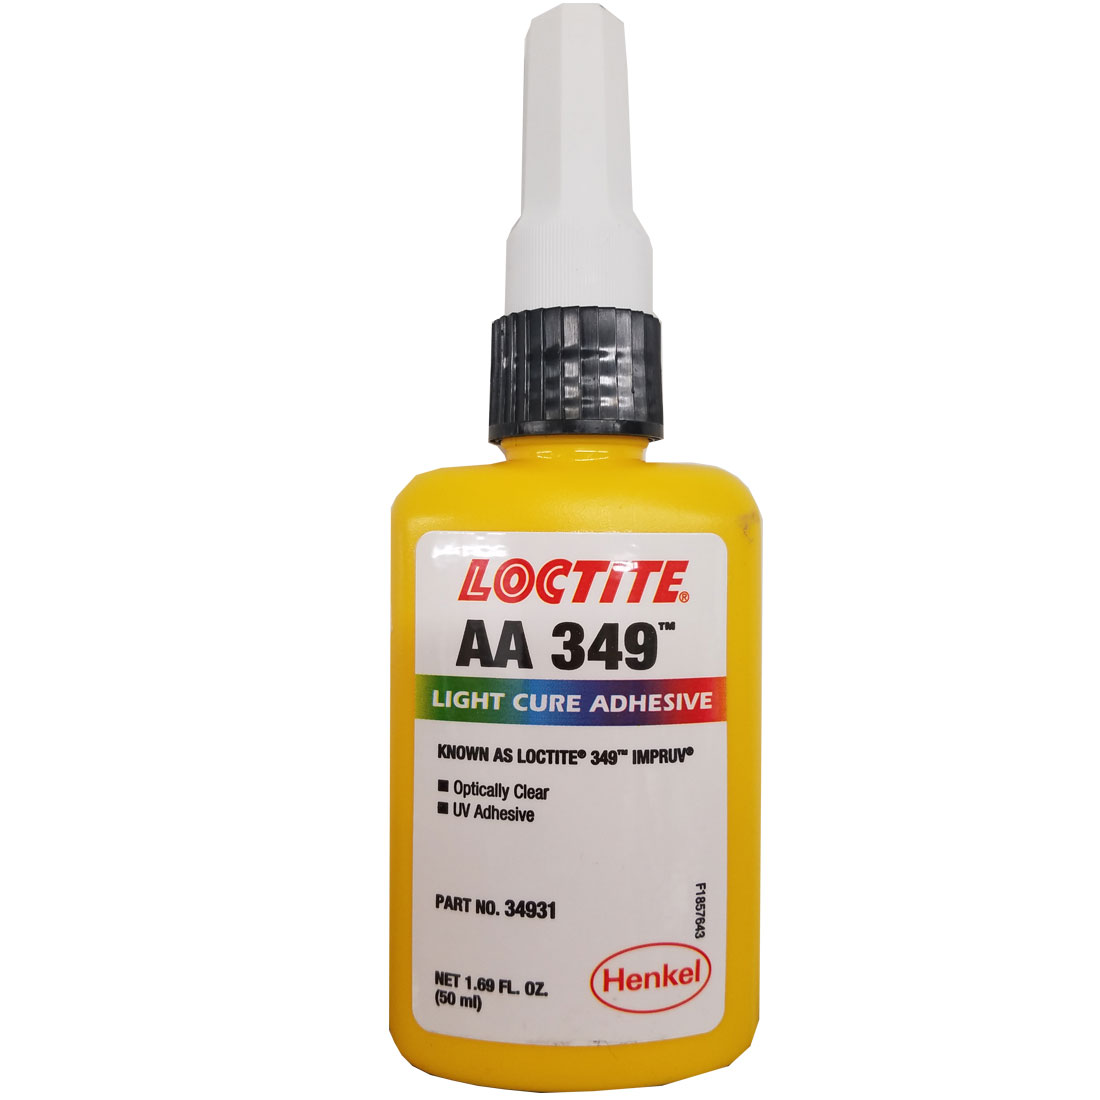 loctite inc Permatex is a leading manufacturer, distributor and marketer of premium chemical products to the auto maintenance and repair, home and hardware markets.